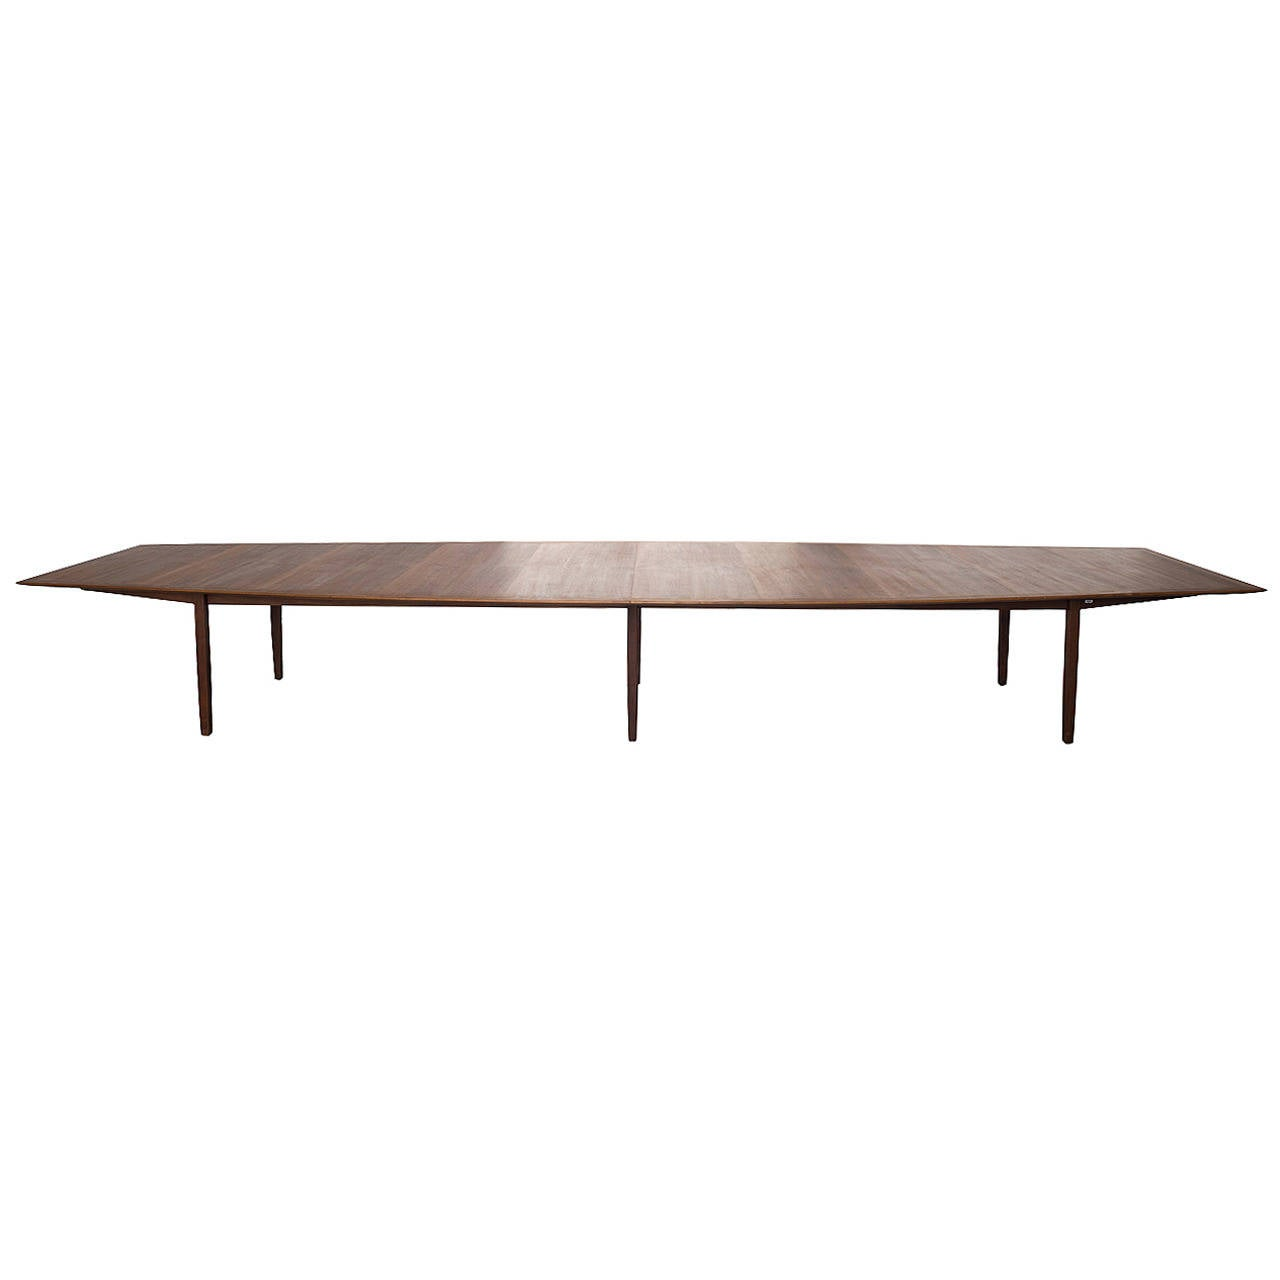 extra long florence knoll dining conference table at 1stdibs. Black Bedroom Furniture Sets. Home Design Ideas